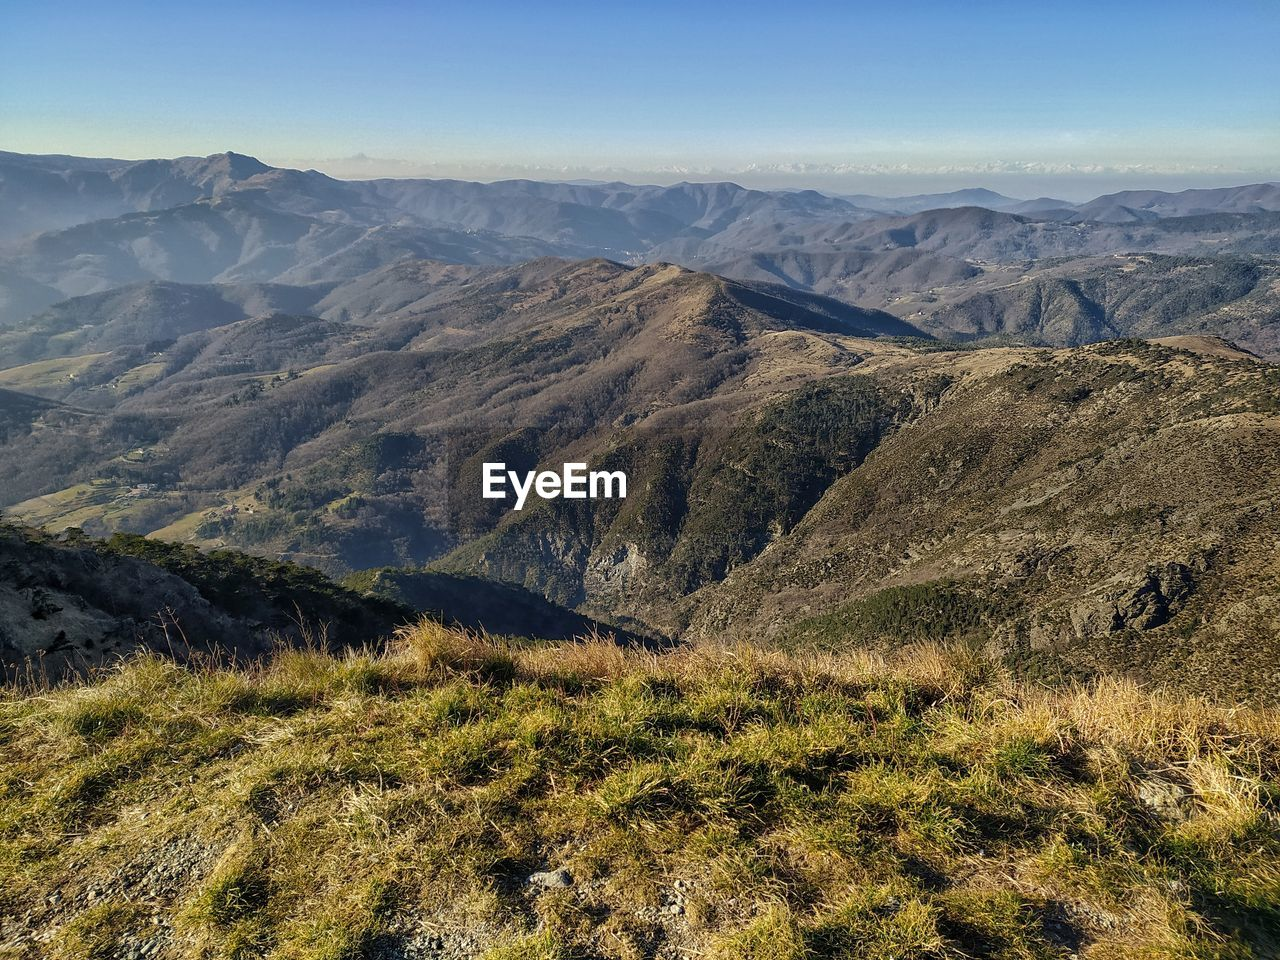 Ligurian appennino to the alps. at horizon the alpine snowcapped arch from monviso to rosa.